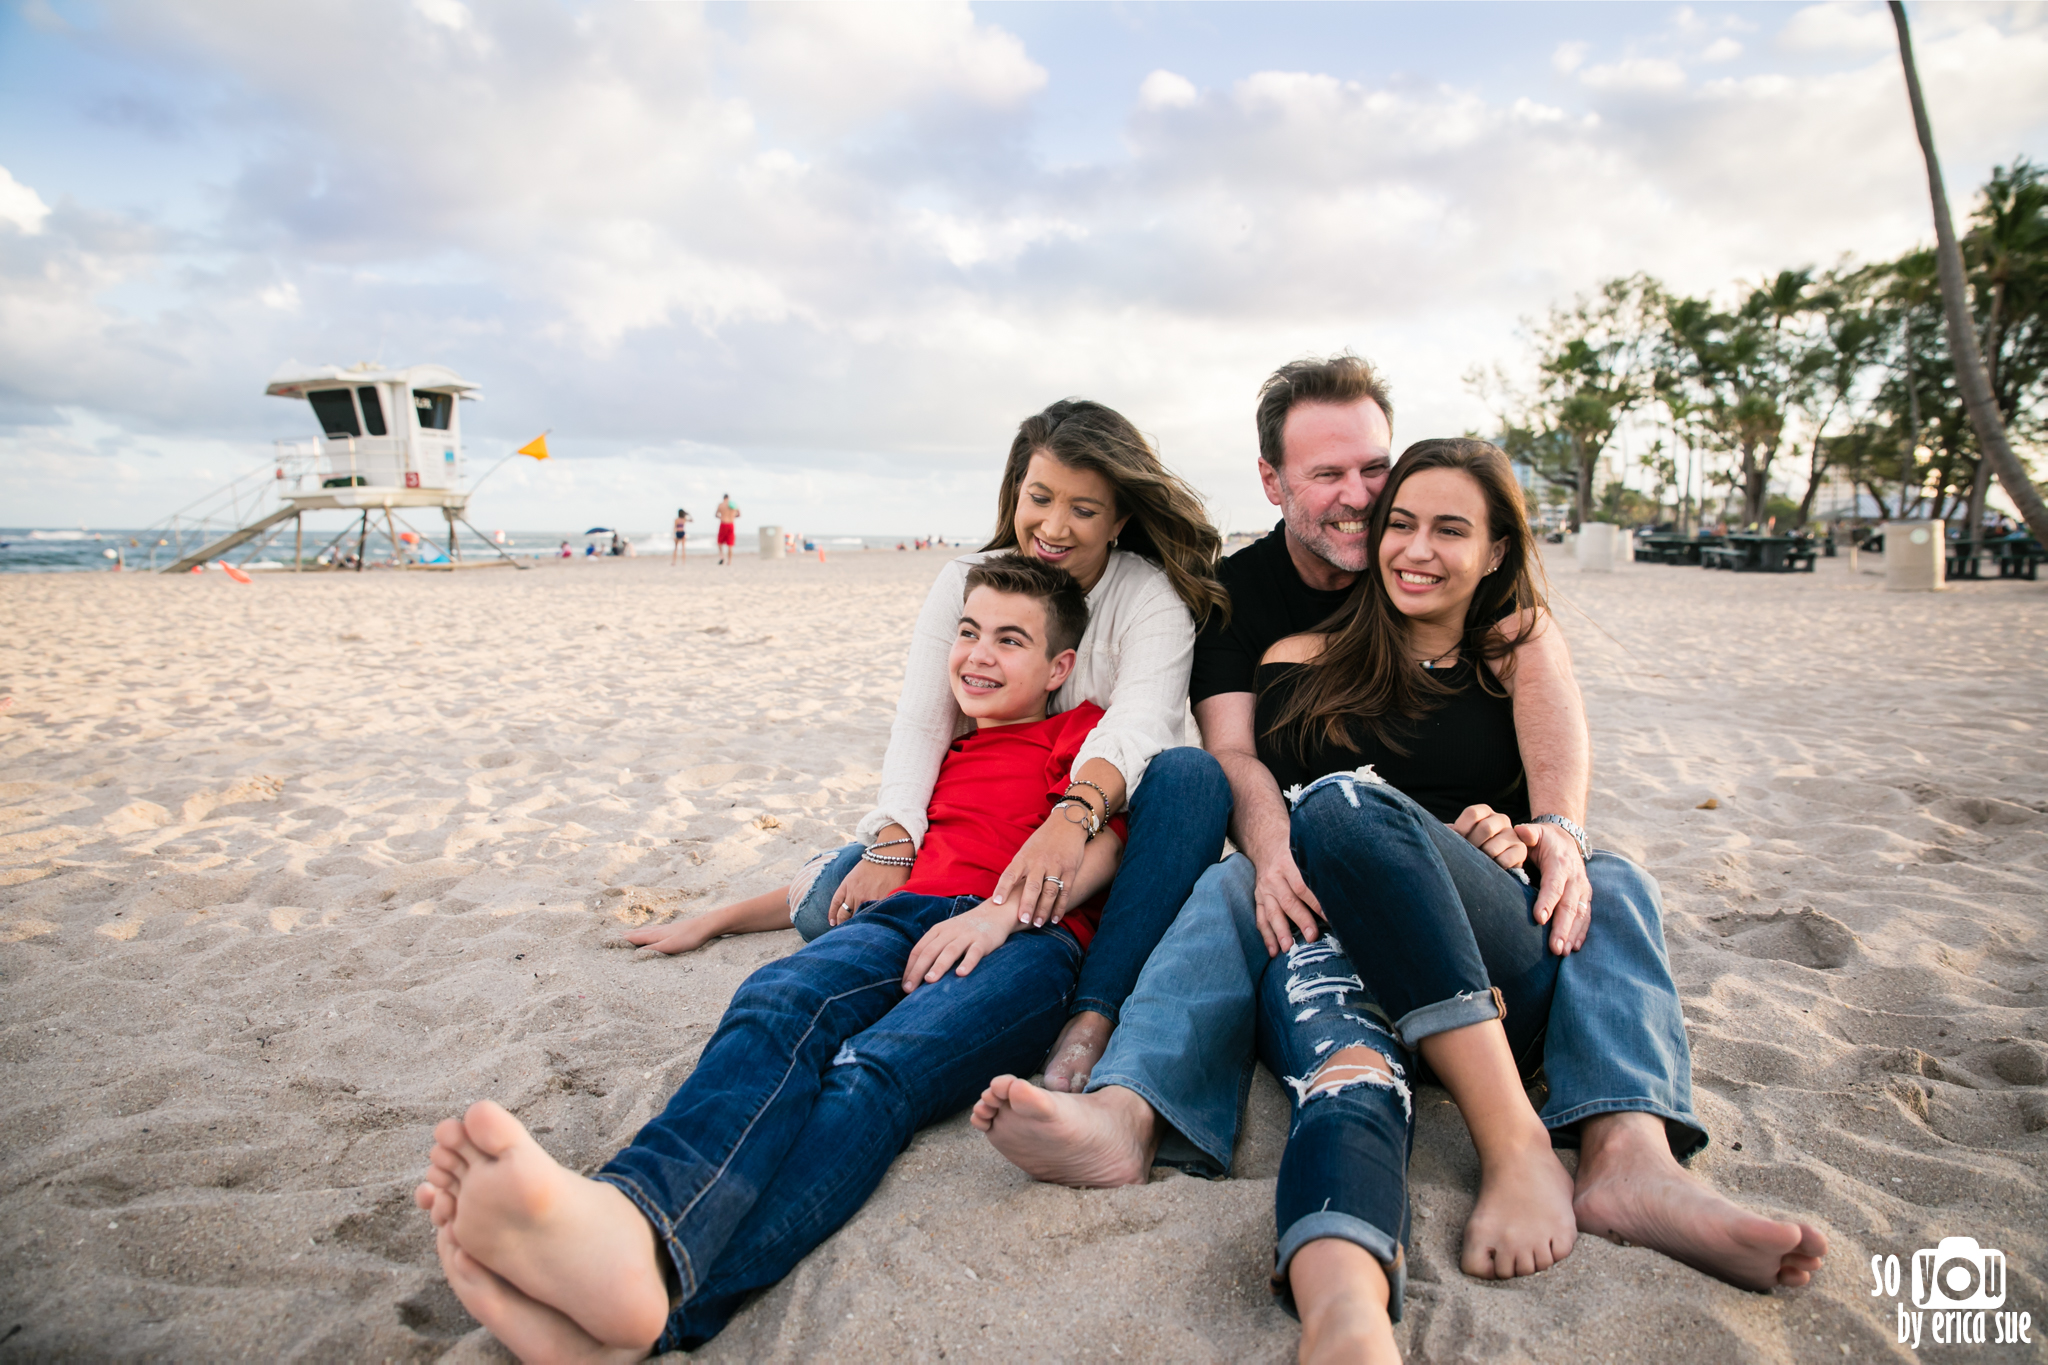 bar-mitzvay-pre-shoot-family-photography-so-you-by-erica-sue-ft-lauderdale-fl-florida-beach-.jpg